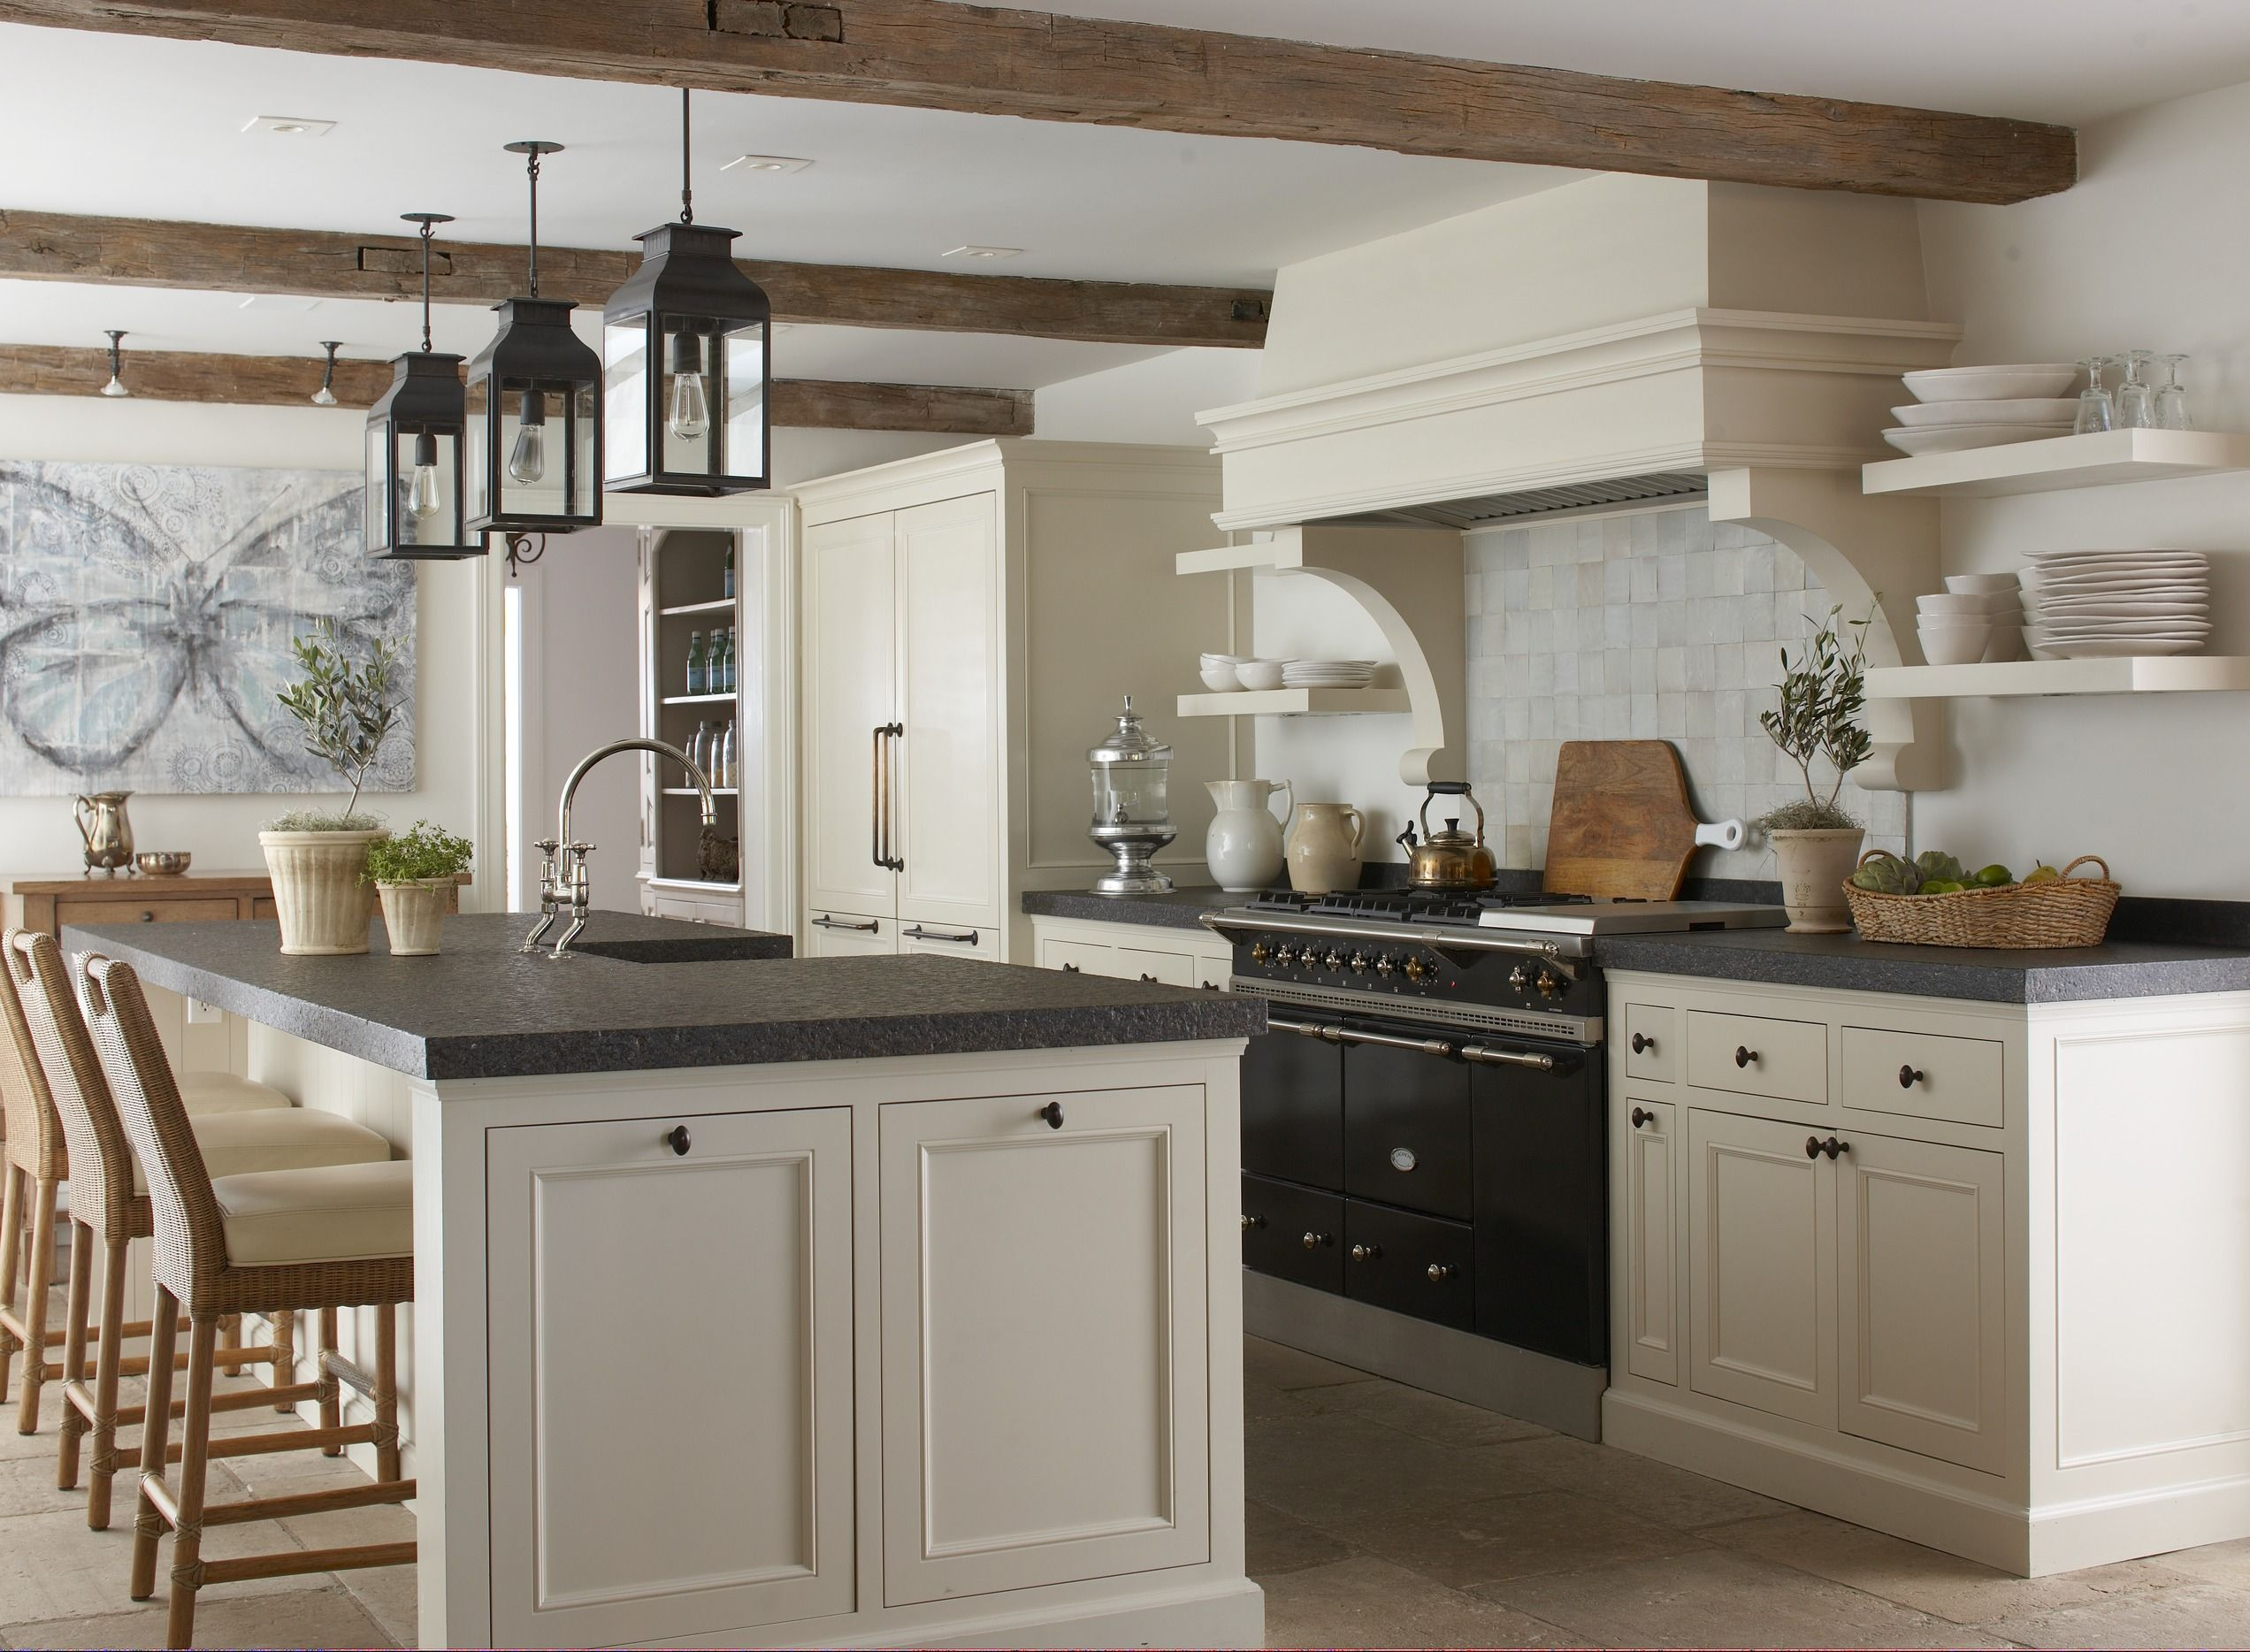 Country French Kitchens Kitchen Remodel Trends Country Kitchen Designs French Country Kitchens